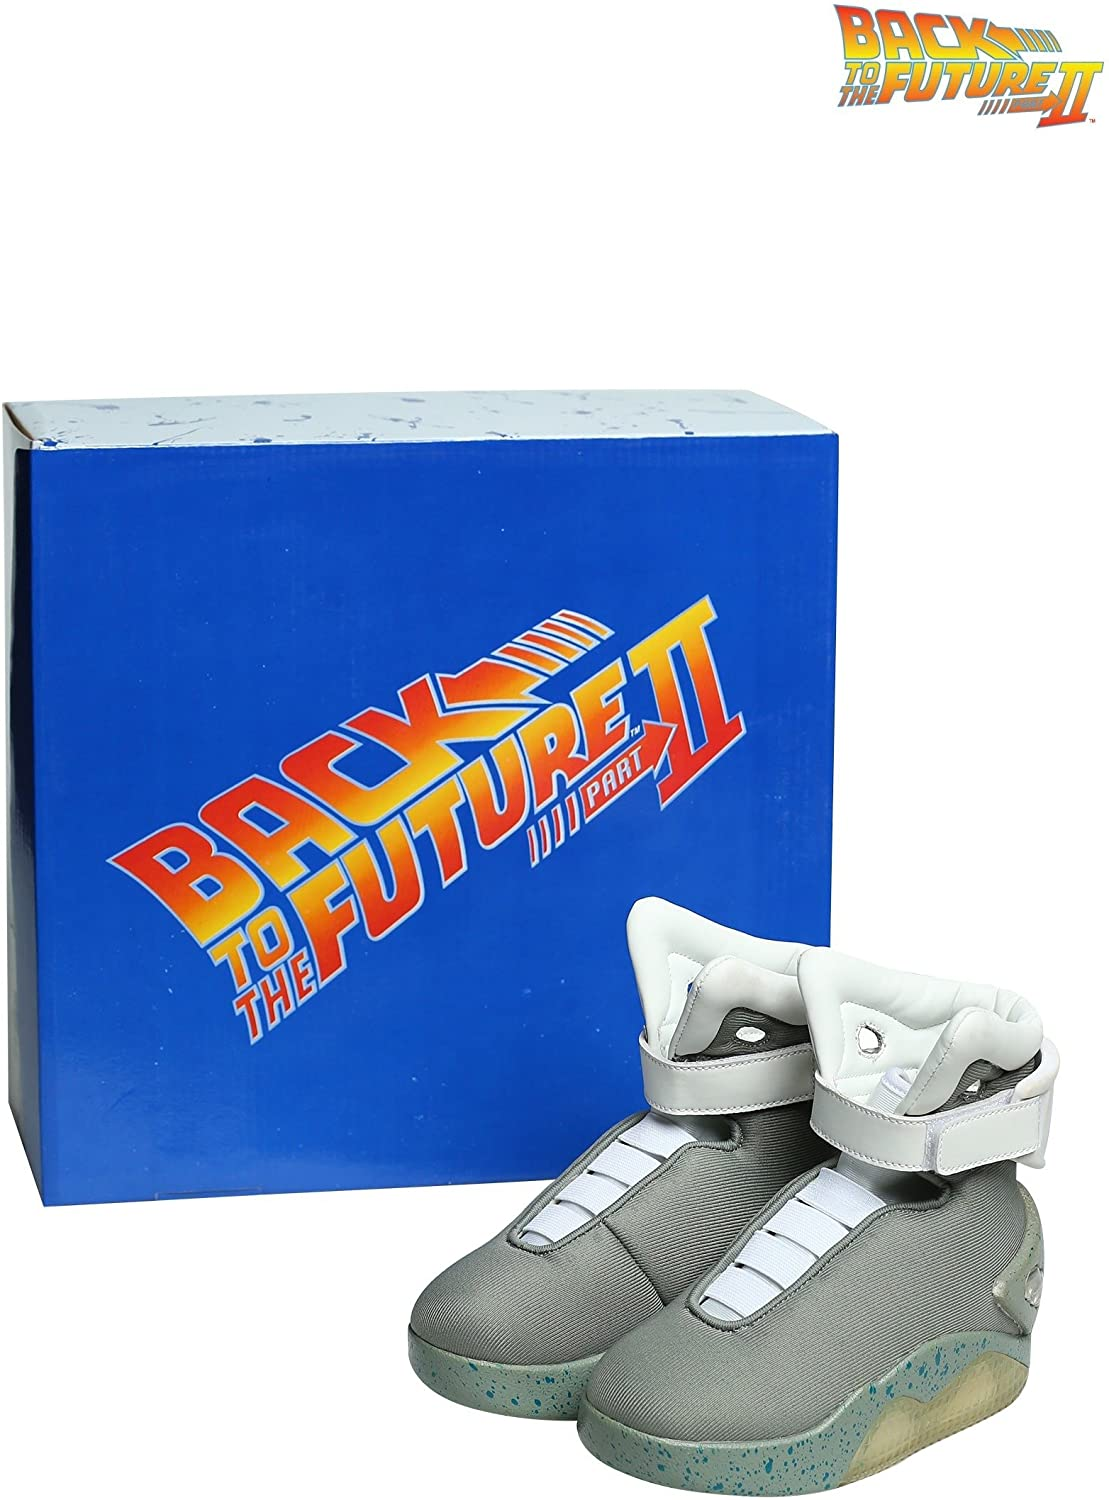 Back to the Future Childrens Light Up LED Shoes